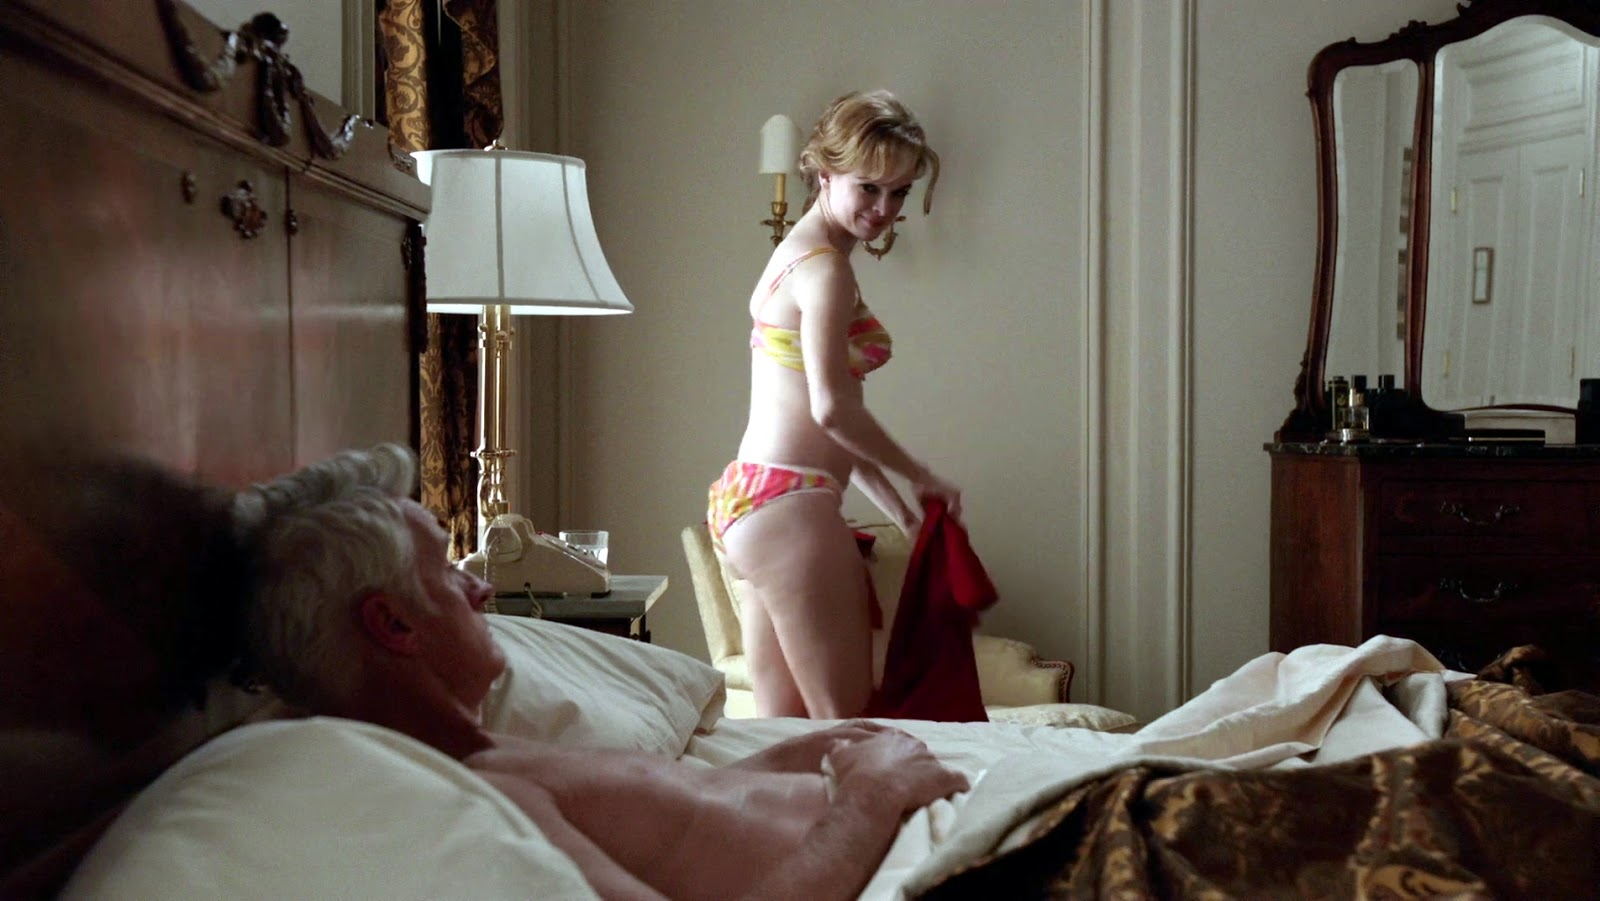 danielle panabaker nude